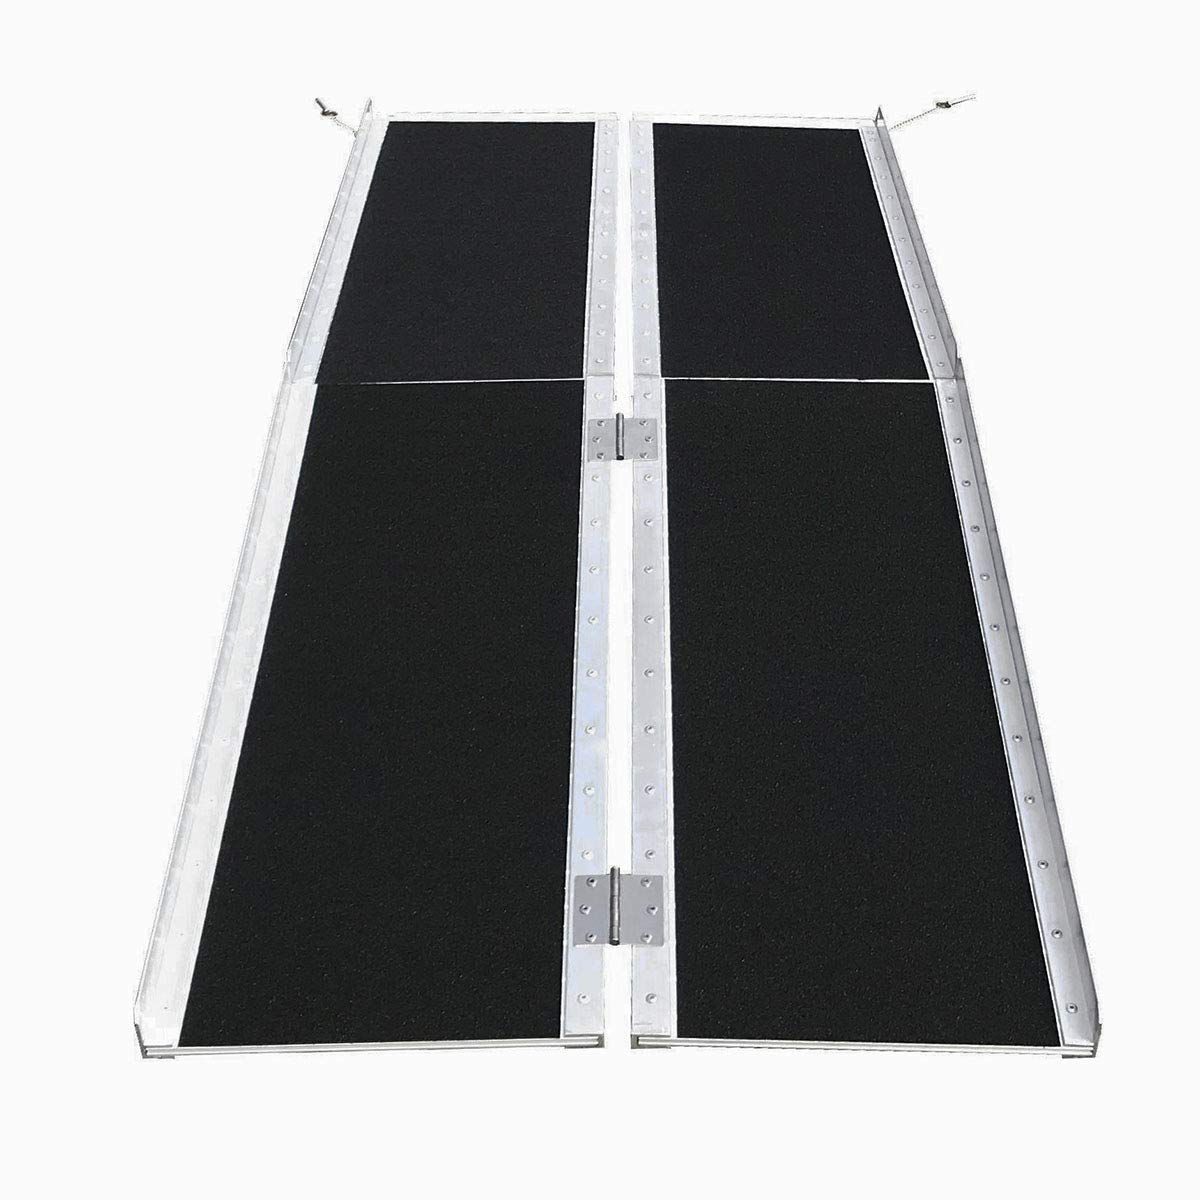 Clevr 6' (72'' X 31'') Non-Skid Aluminum Wheelchair Loading Traction Ramp, Lightweight Folding Portable, Single Fold Wheelchair Scooter Ramp, Extra Wide 31'', Holds up to 600 lbs by Clevr (Image #6)